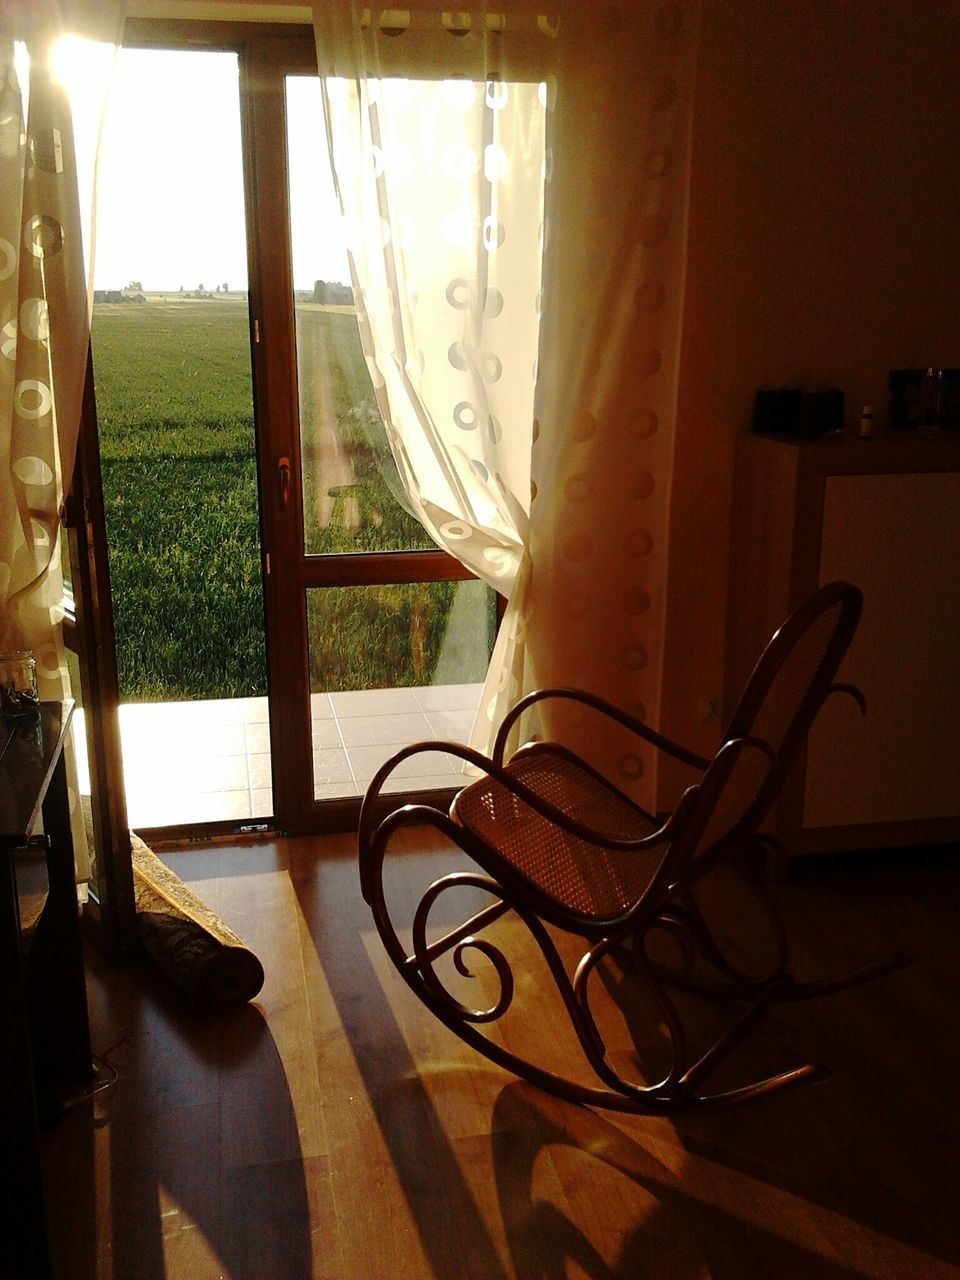 window, indoors, table, home interior, curtain, no people, day, sunlight, close-up